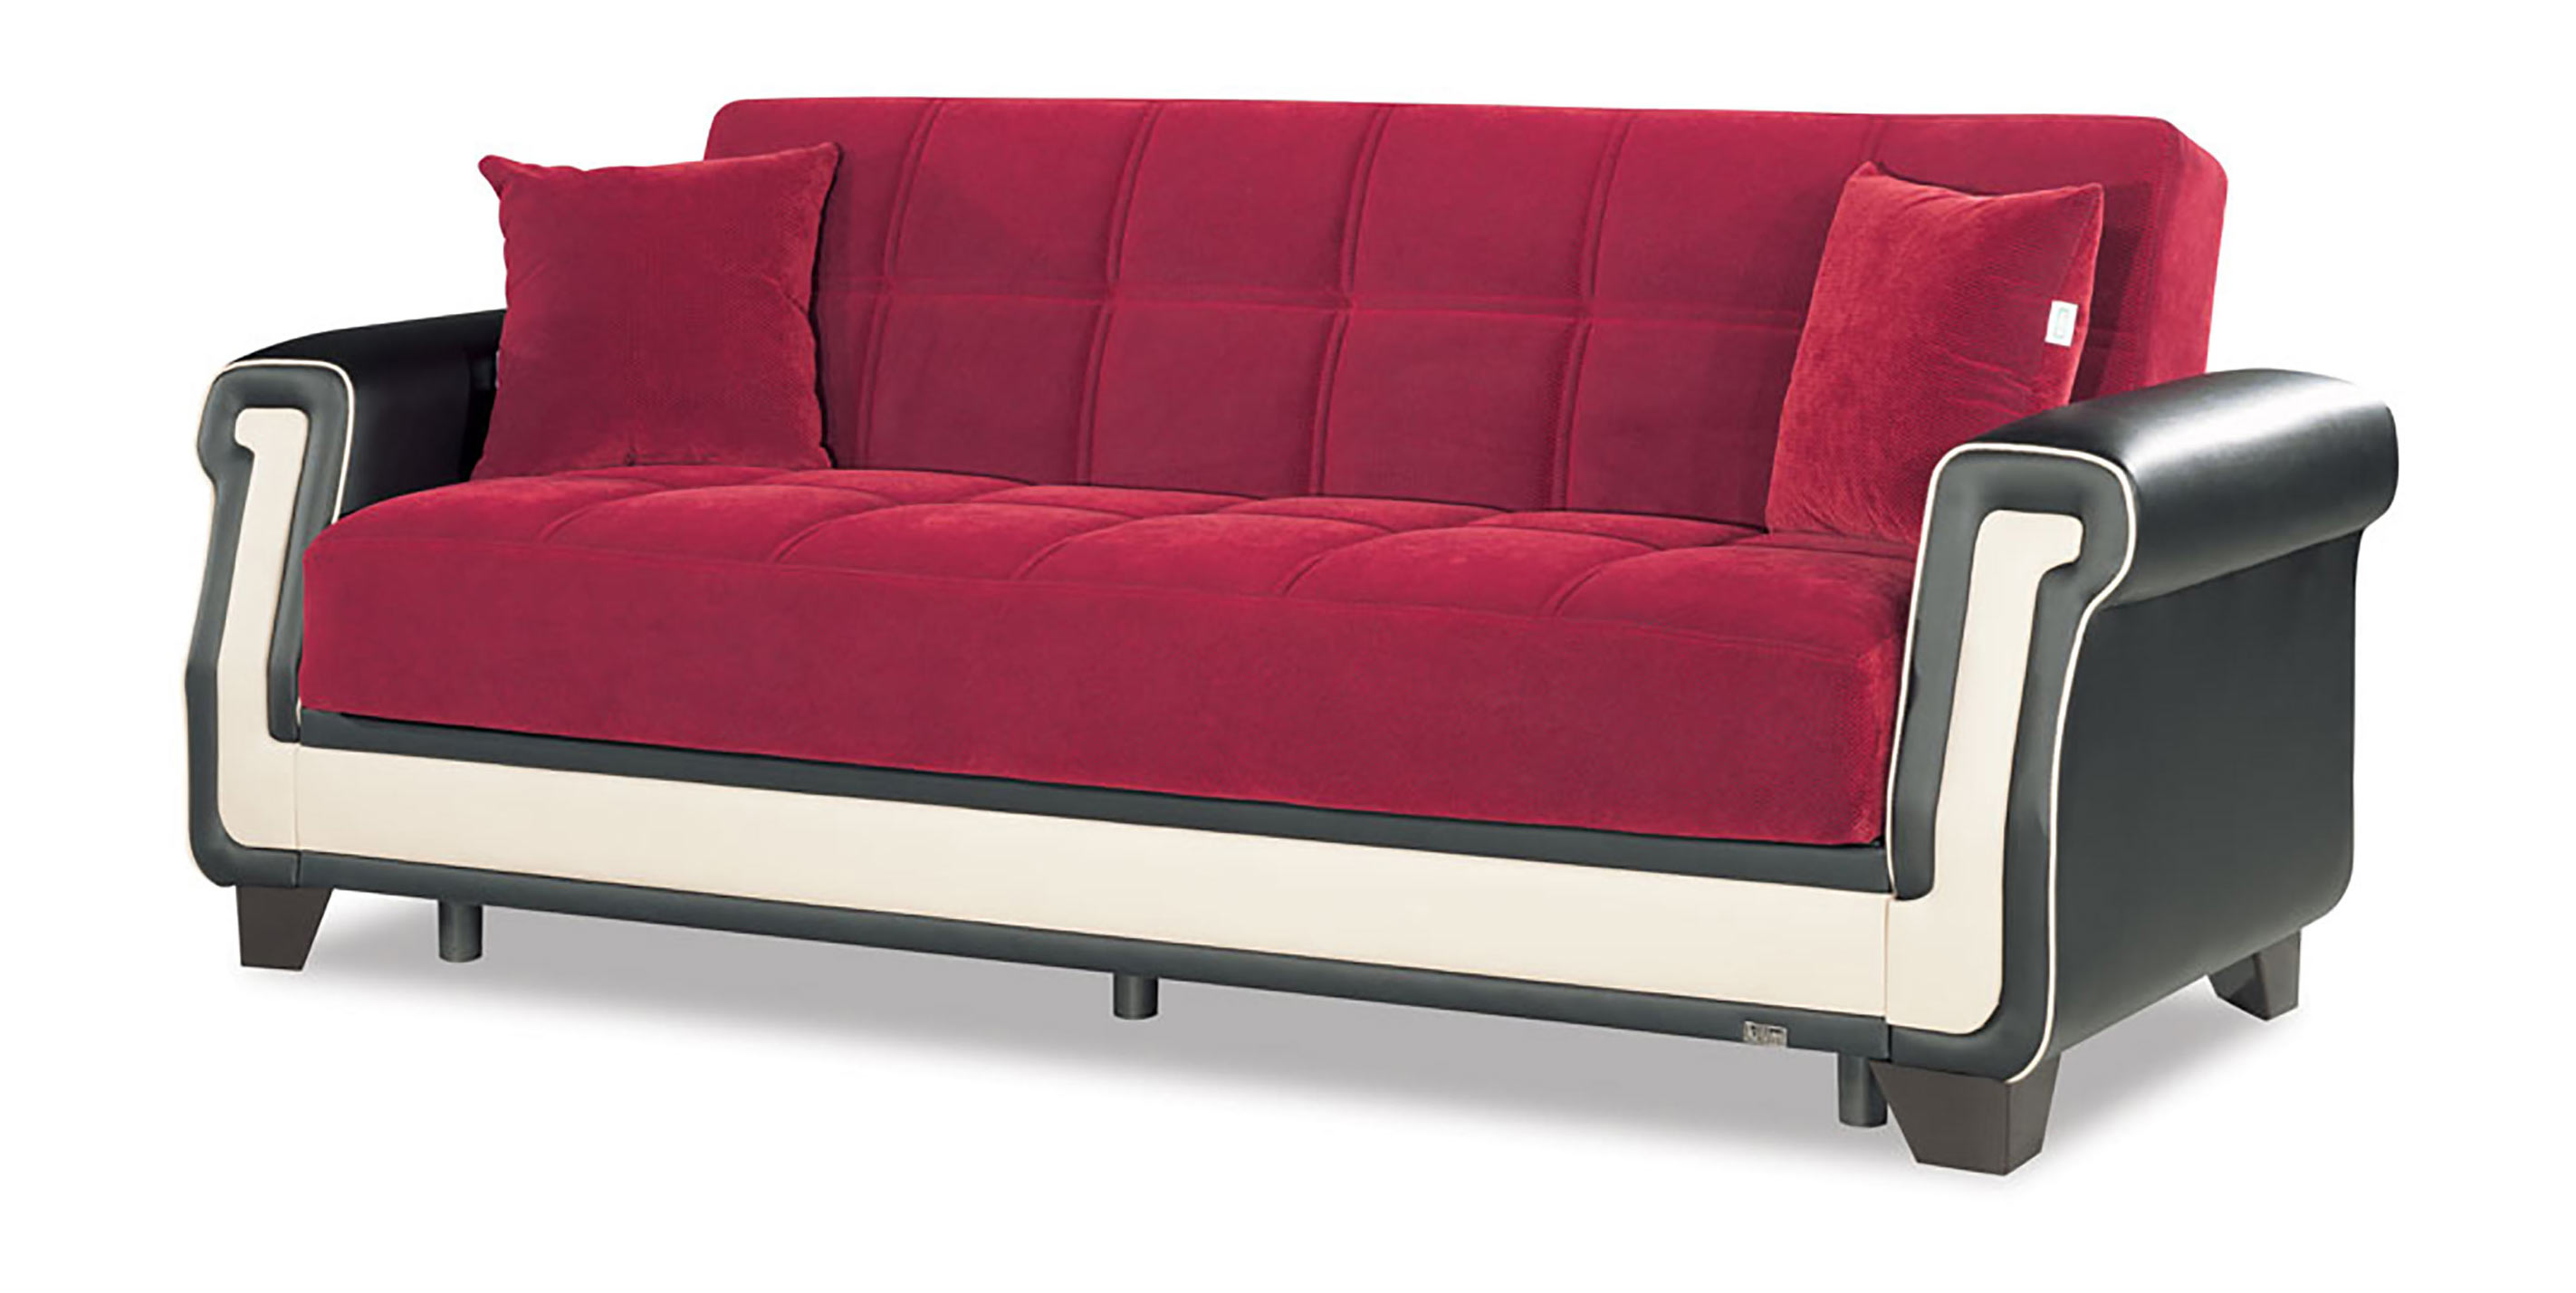 Proline red convertible sofa bed by casamode for Sofas convertibles